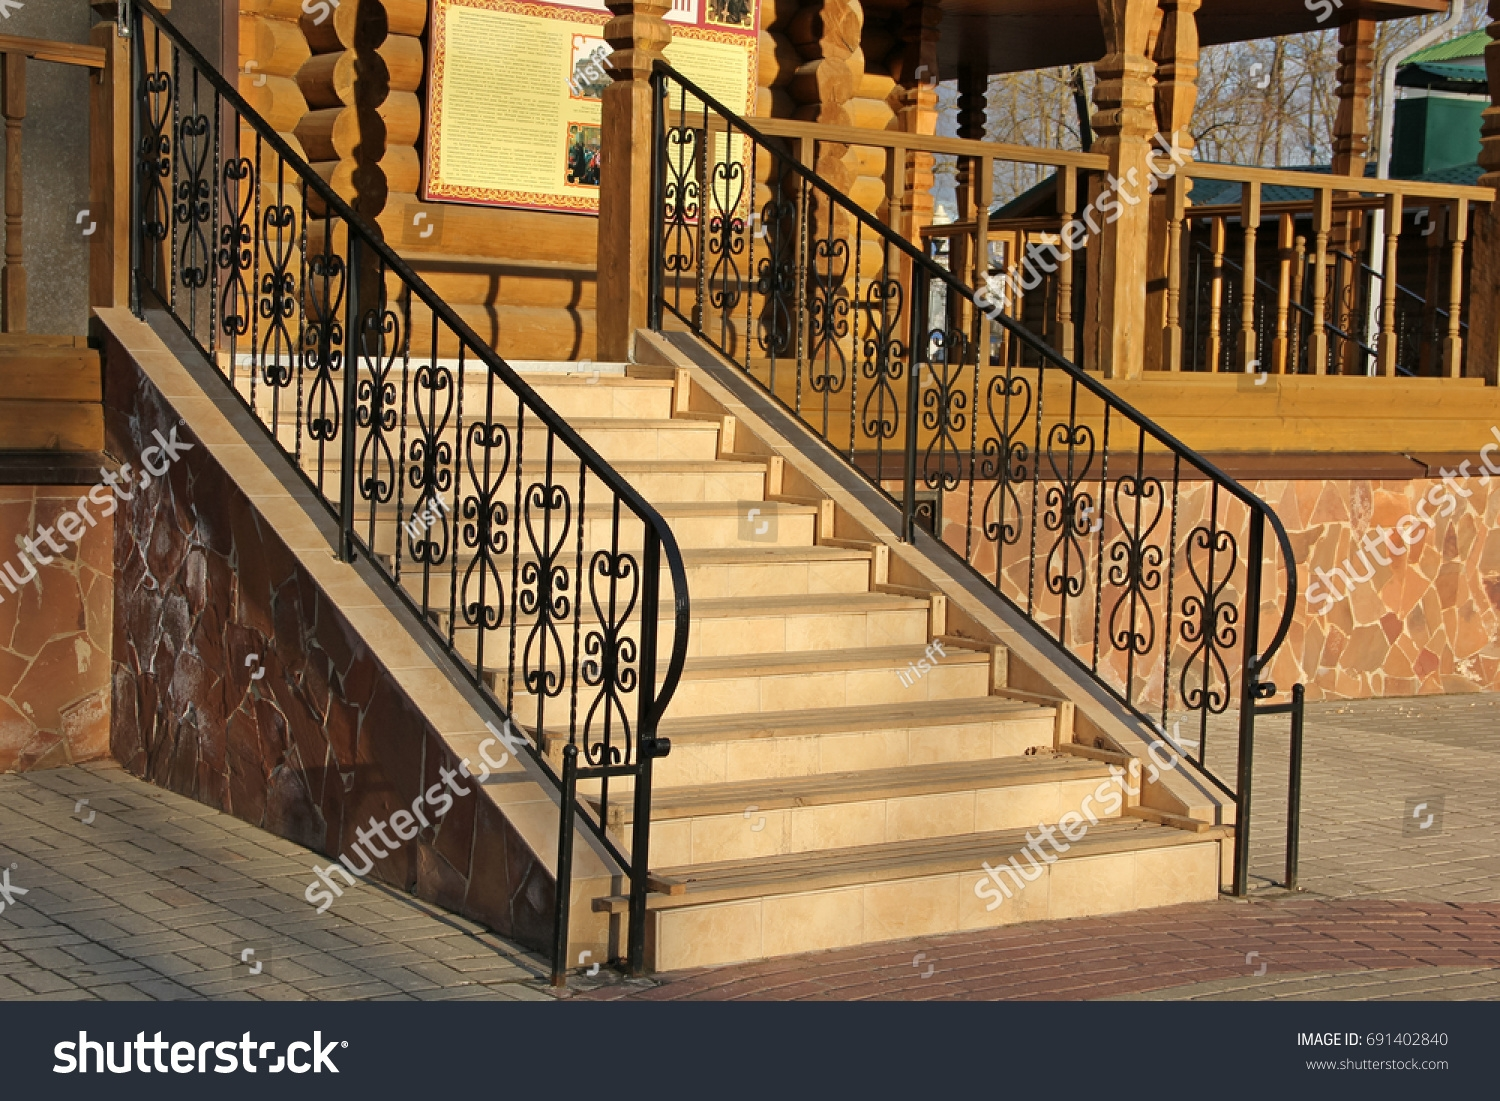 Wrought Iron Stair Railing Stairs Stock Photo Edit Now 691402840   Wrought Iron Stair Railing   Italian   Front Porch   French   Mediterranean   Design